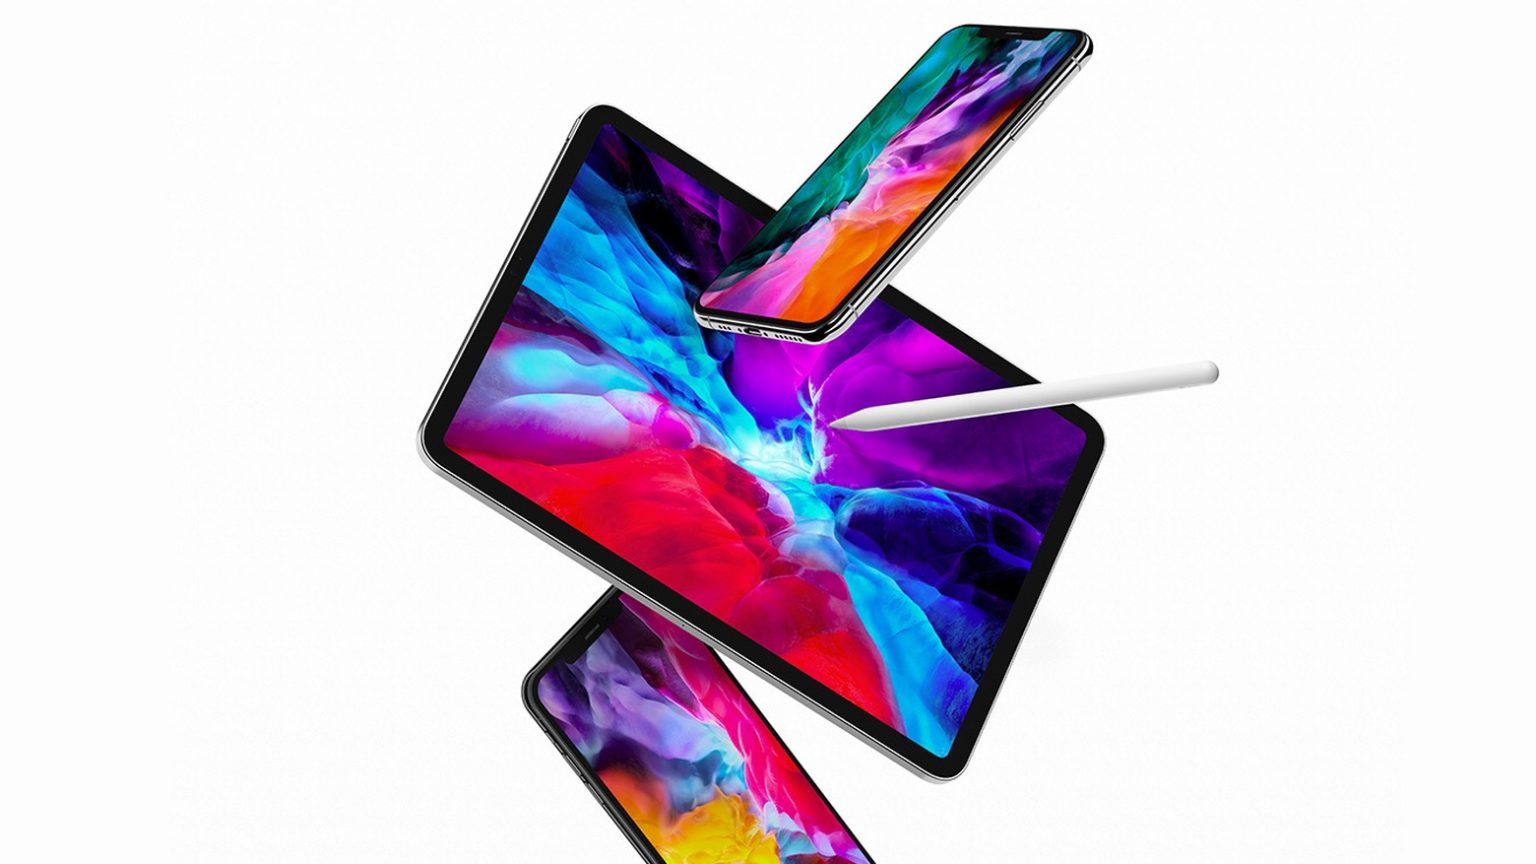 Grab The Beautiful 2020 Ipad Pro Wallpapers Now Cult Of Mac